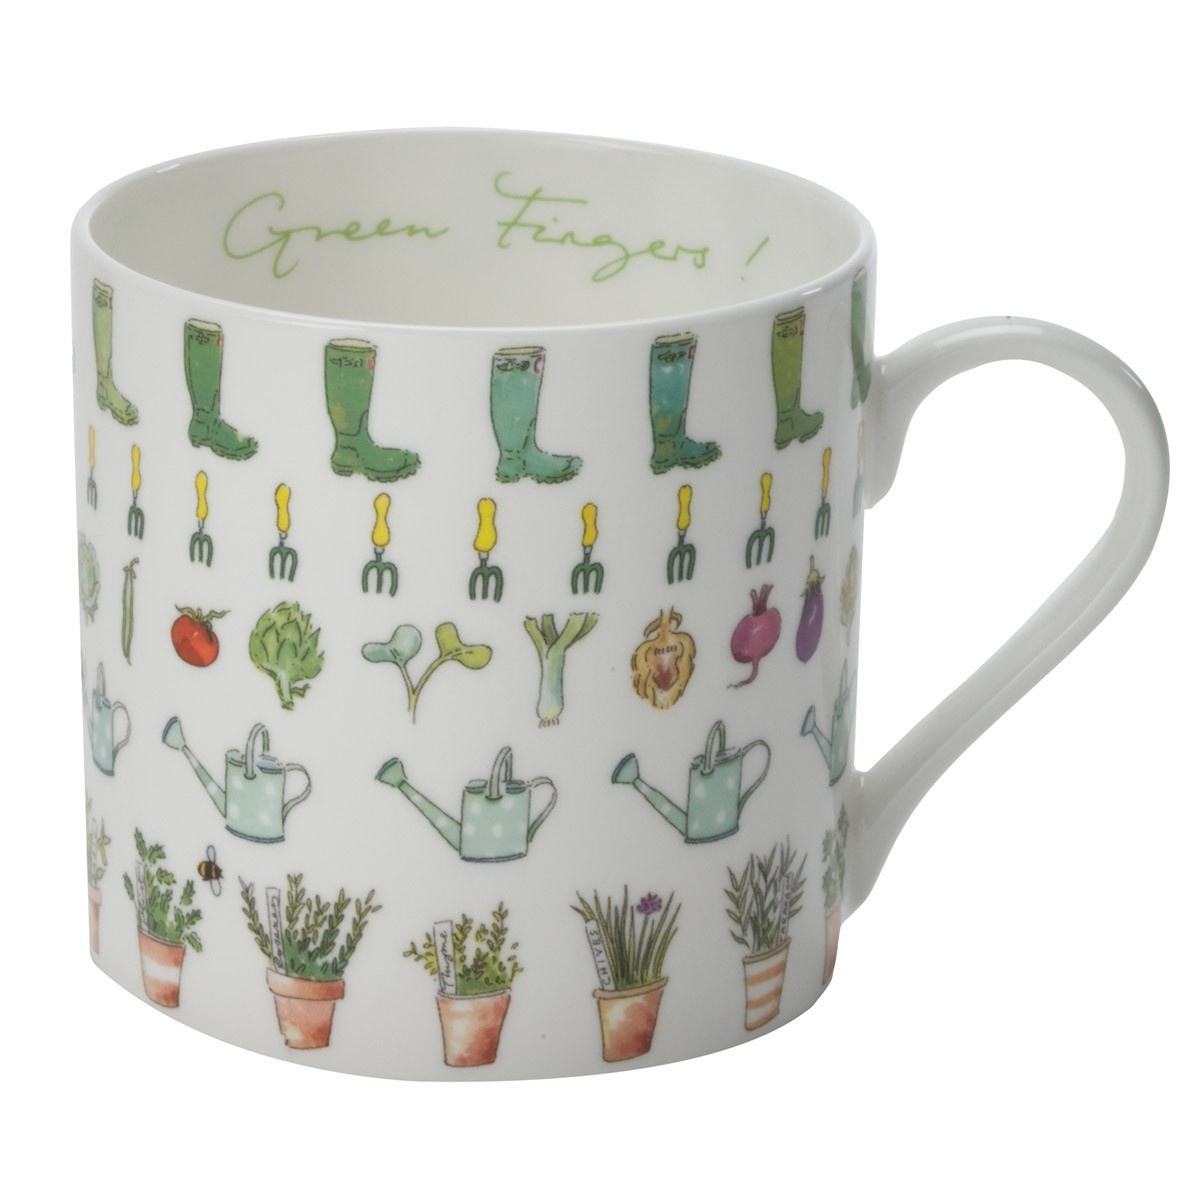 Large Mug, Green Fingers